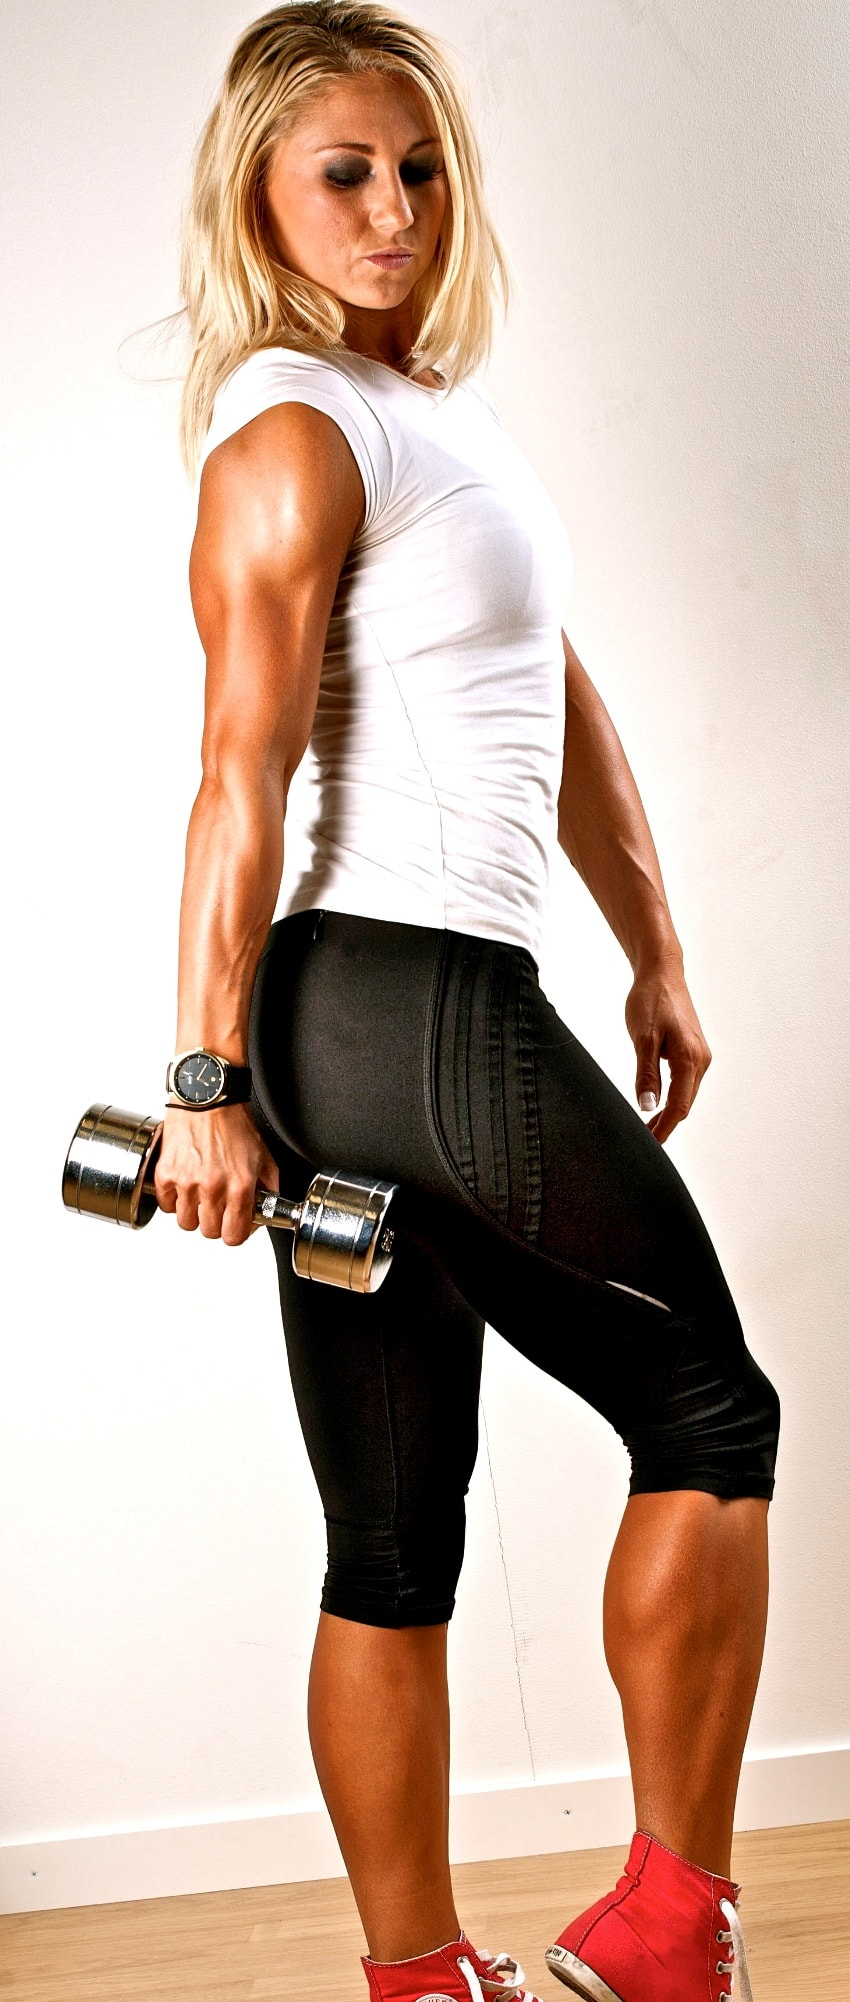 Michaela Augustsson during a phtooshoot, holding a light dumbbell in her hand while displaying her calves and arms from the side